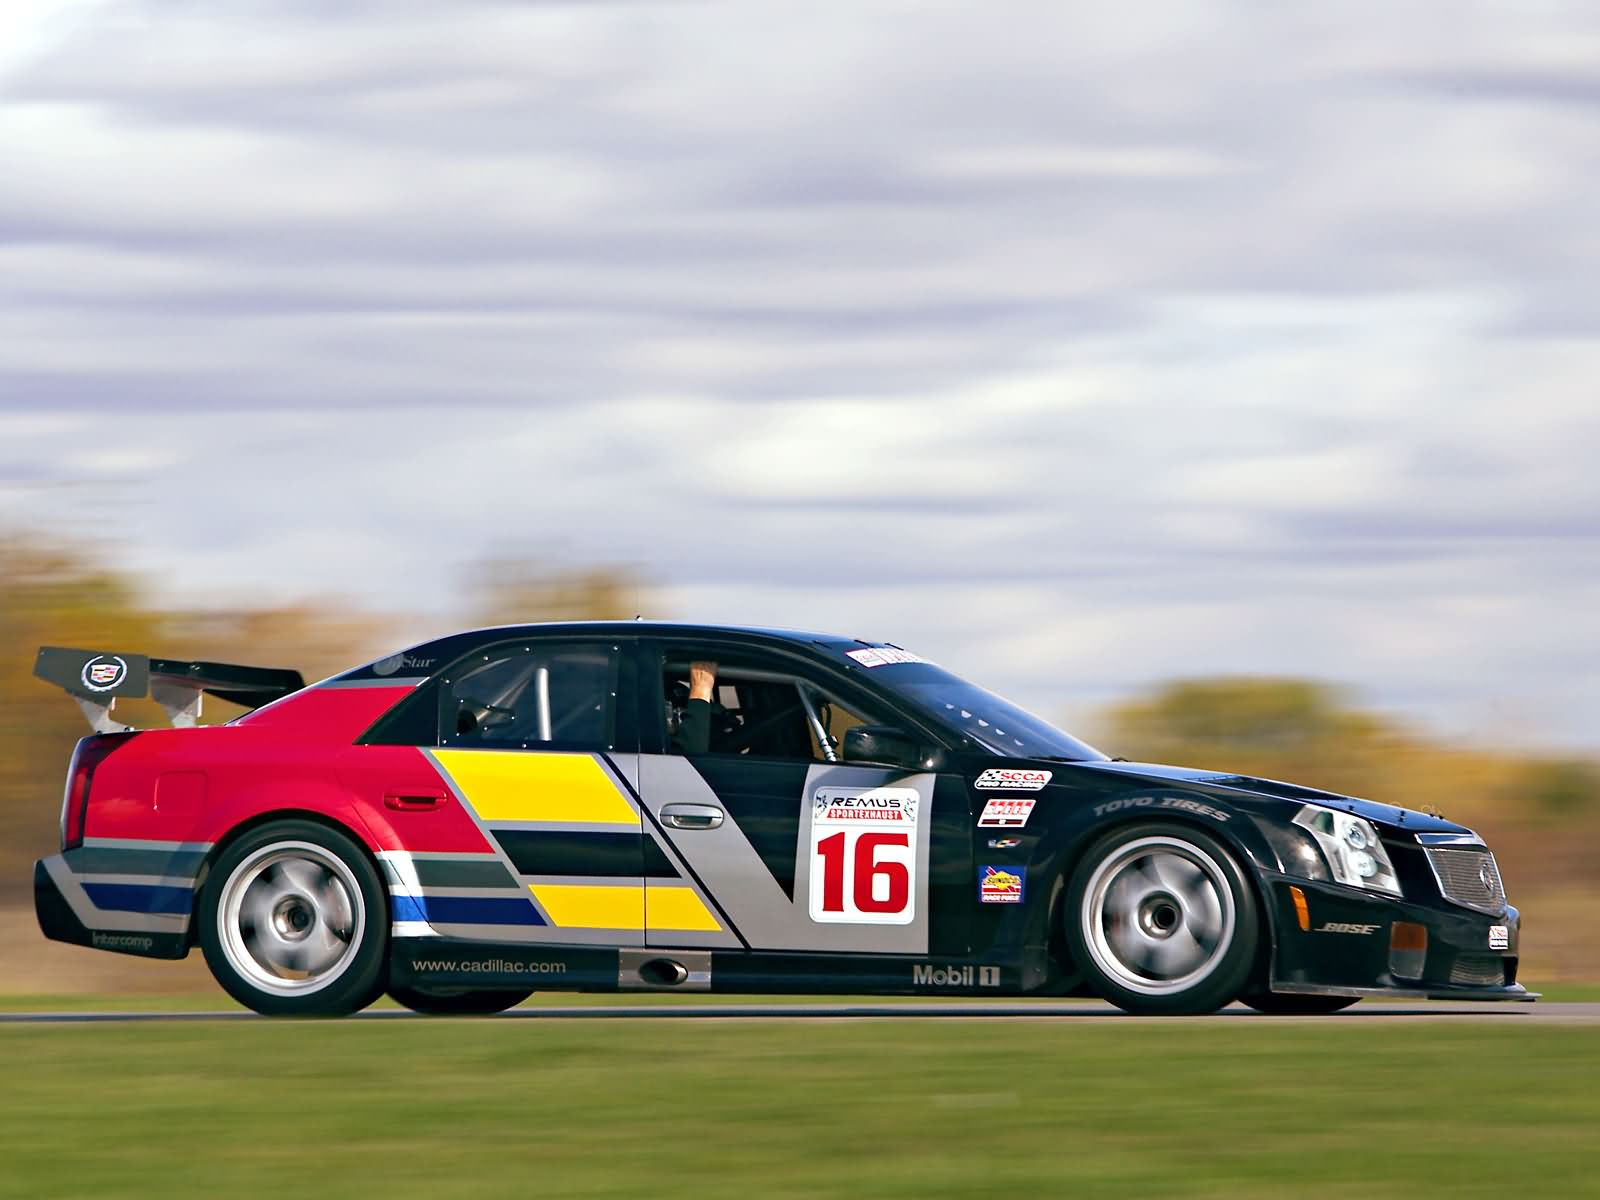 cts specs pictures ig v com information car race coupe cadillac